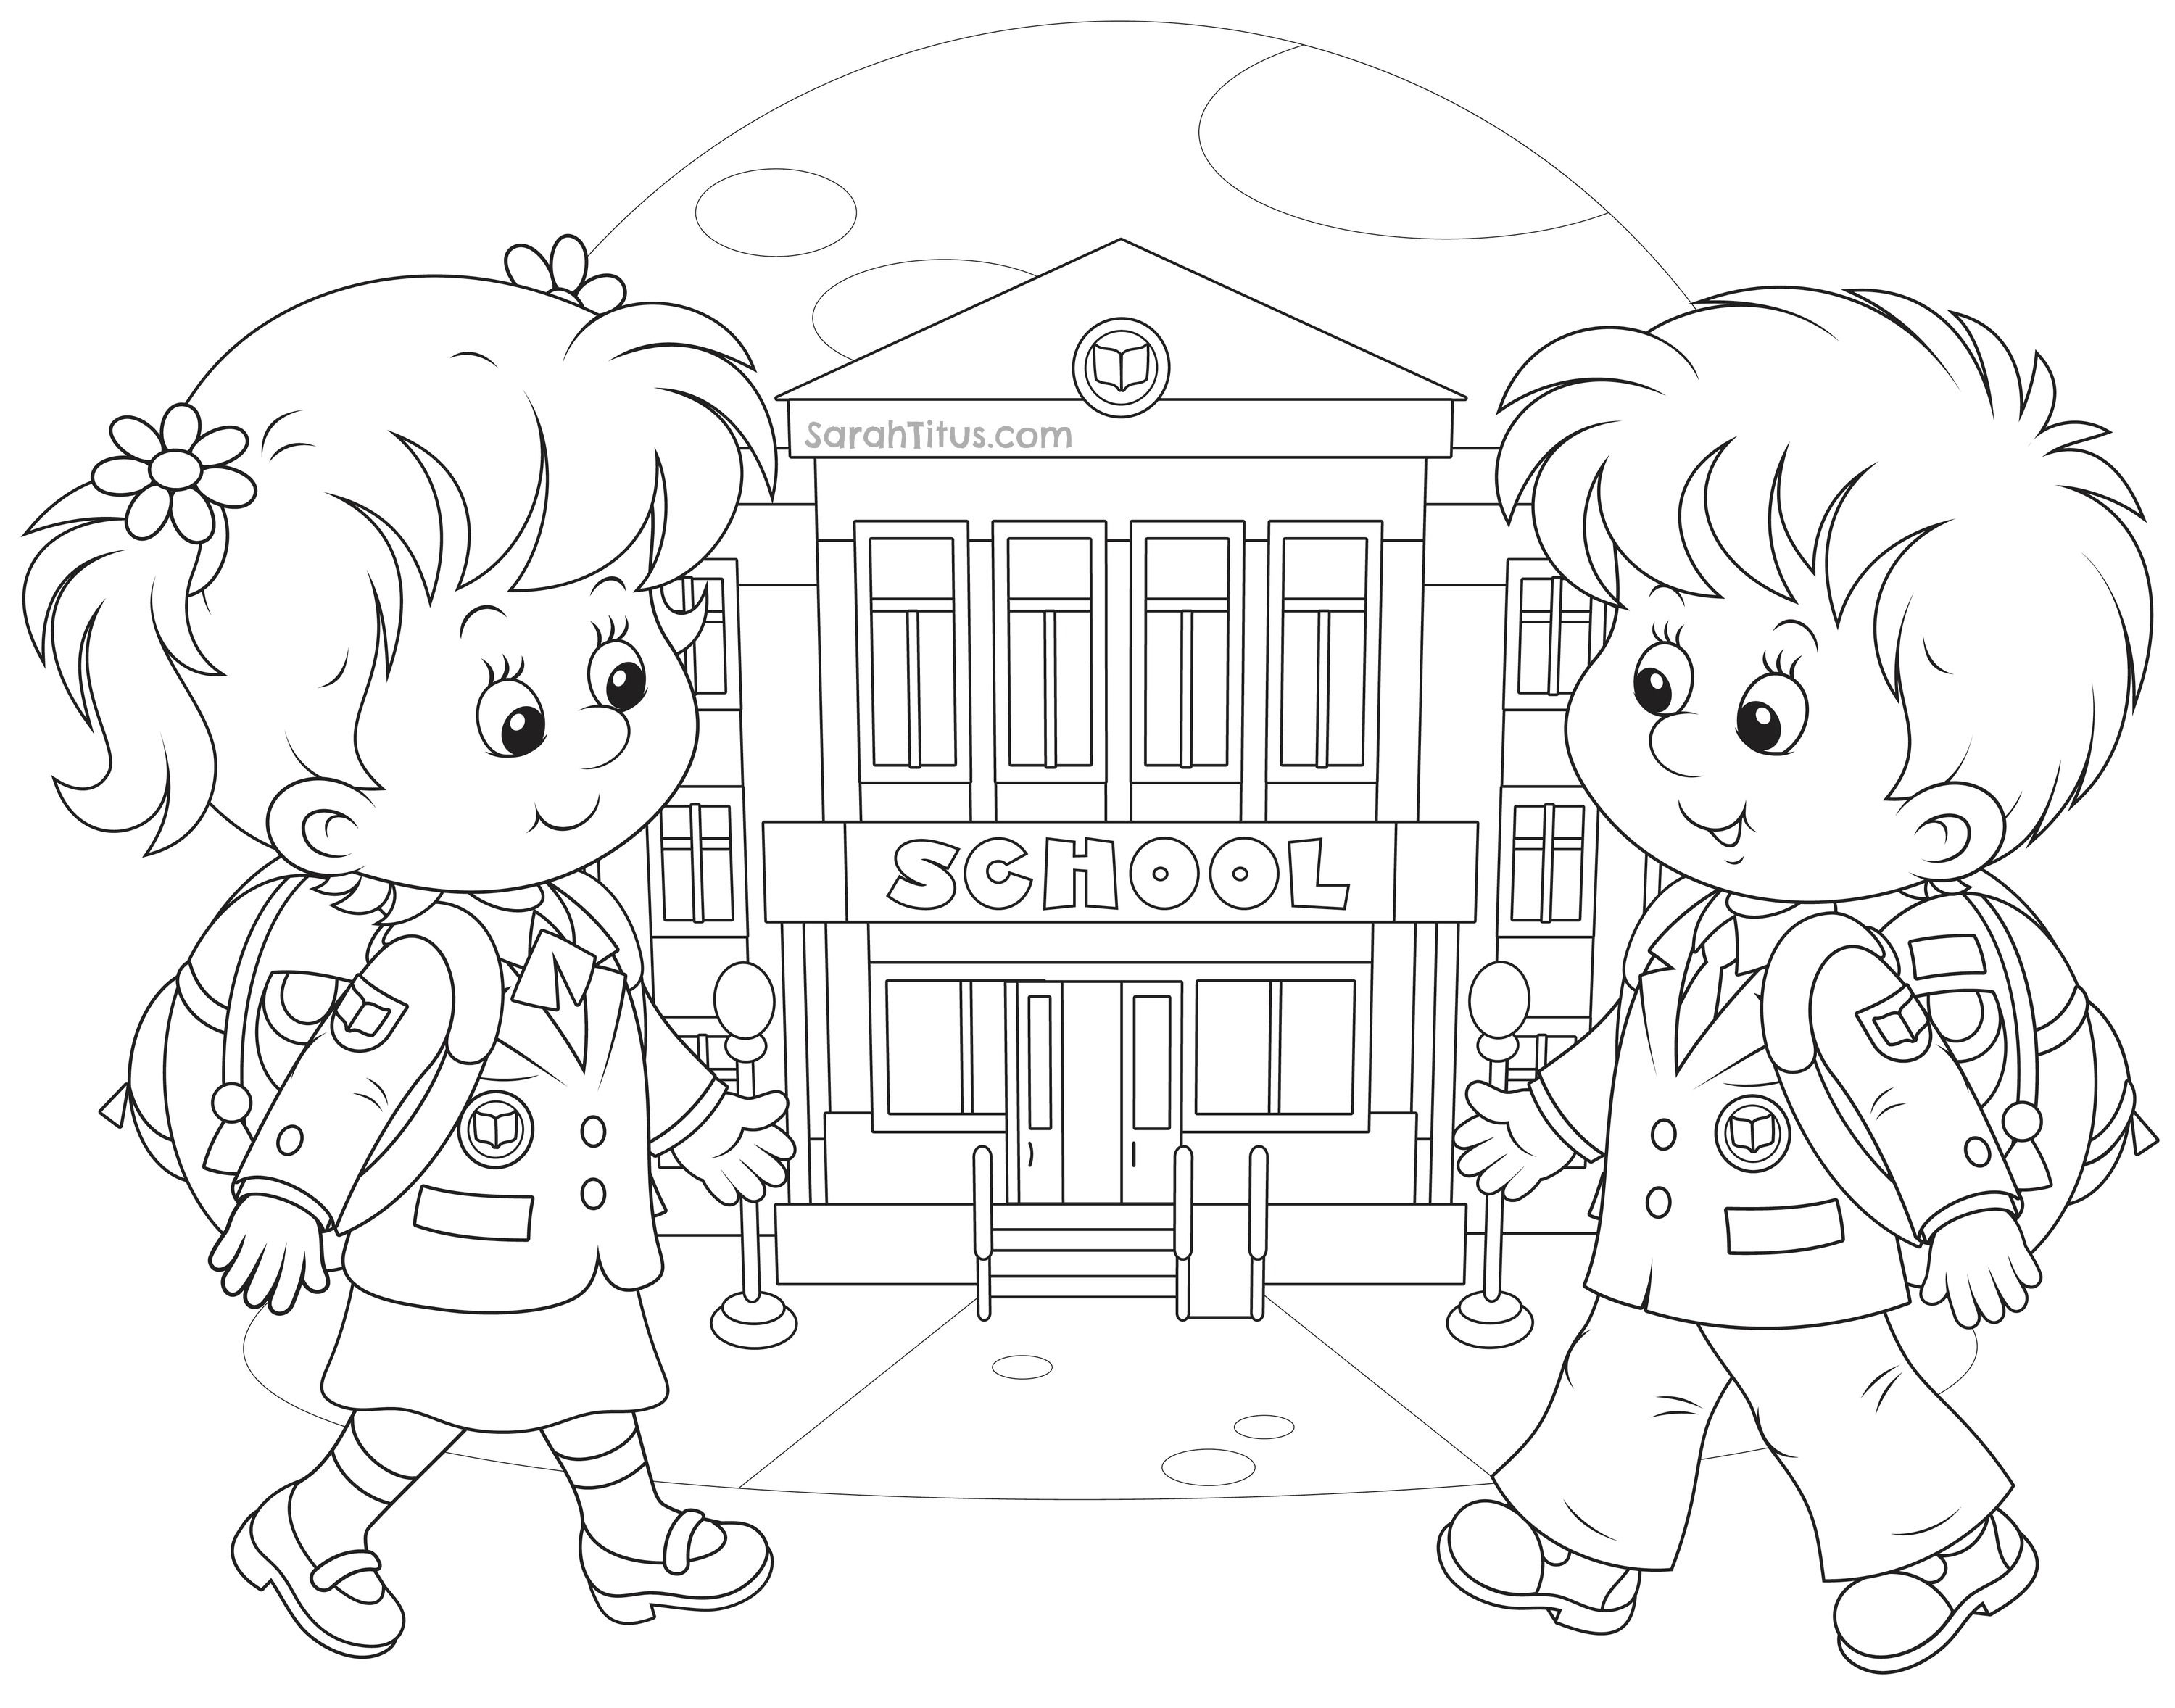 Back to School Coloring Pages | Pinterest | School colors, School ...